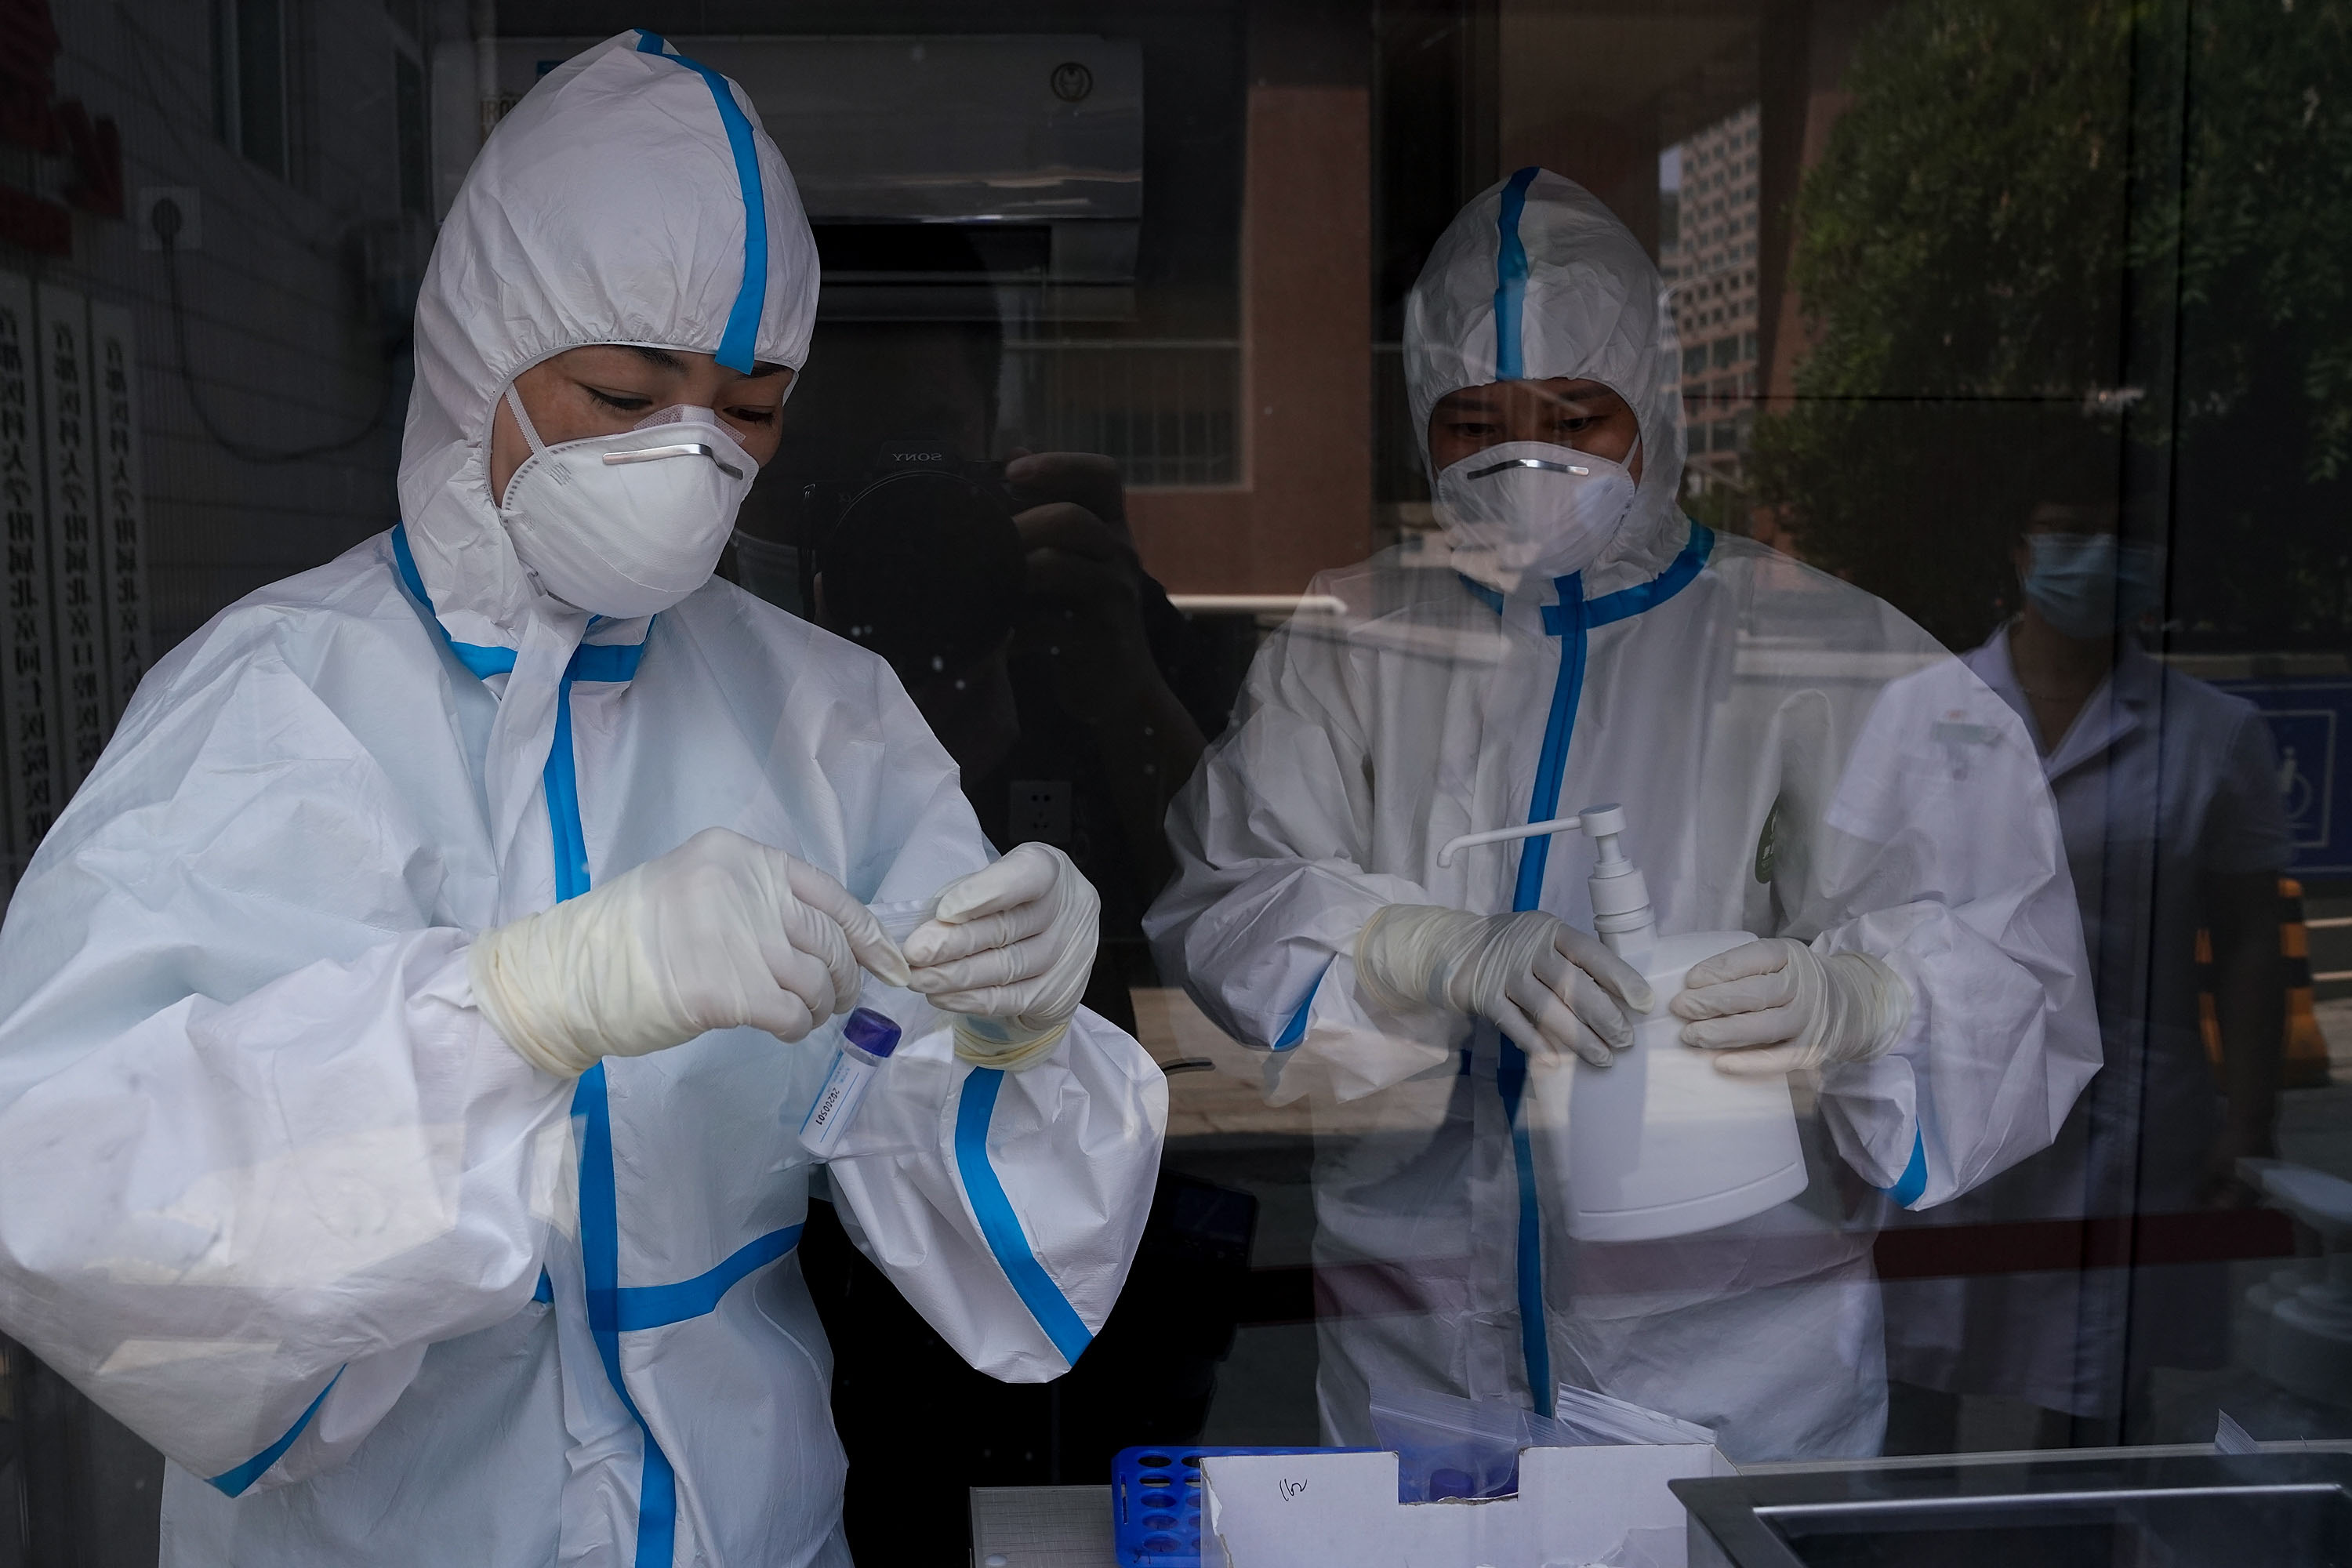 Medical workers check samples at a Beijing hospital testing station on July 14.